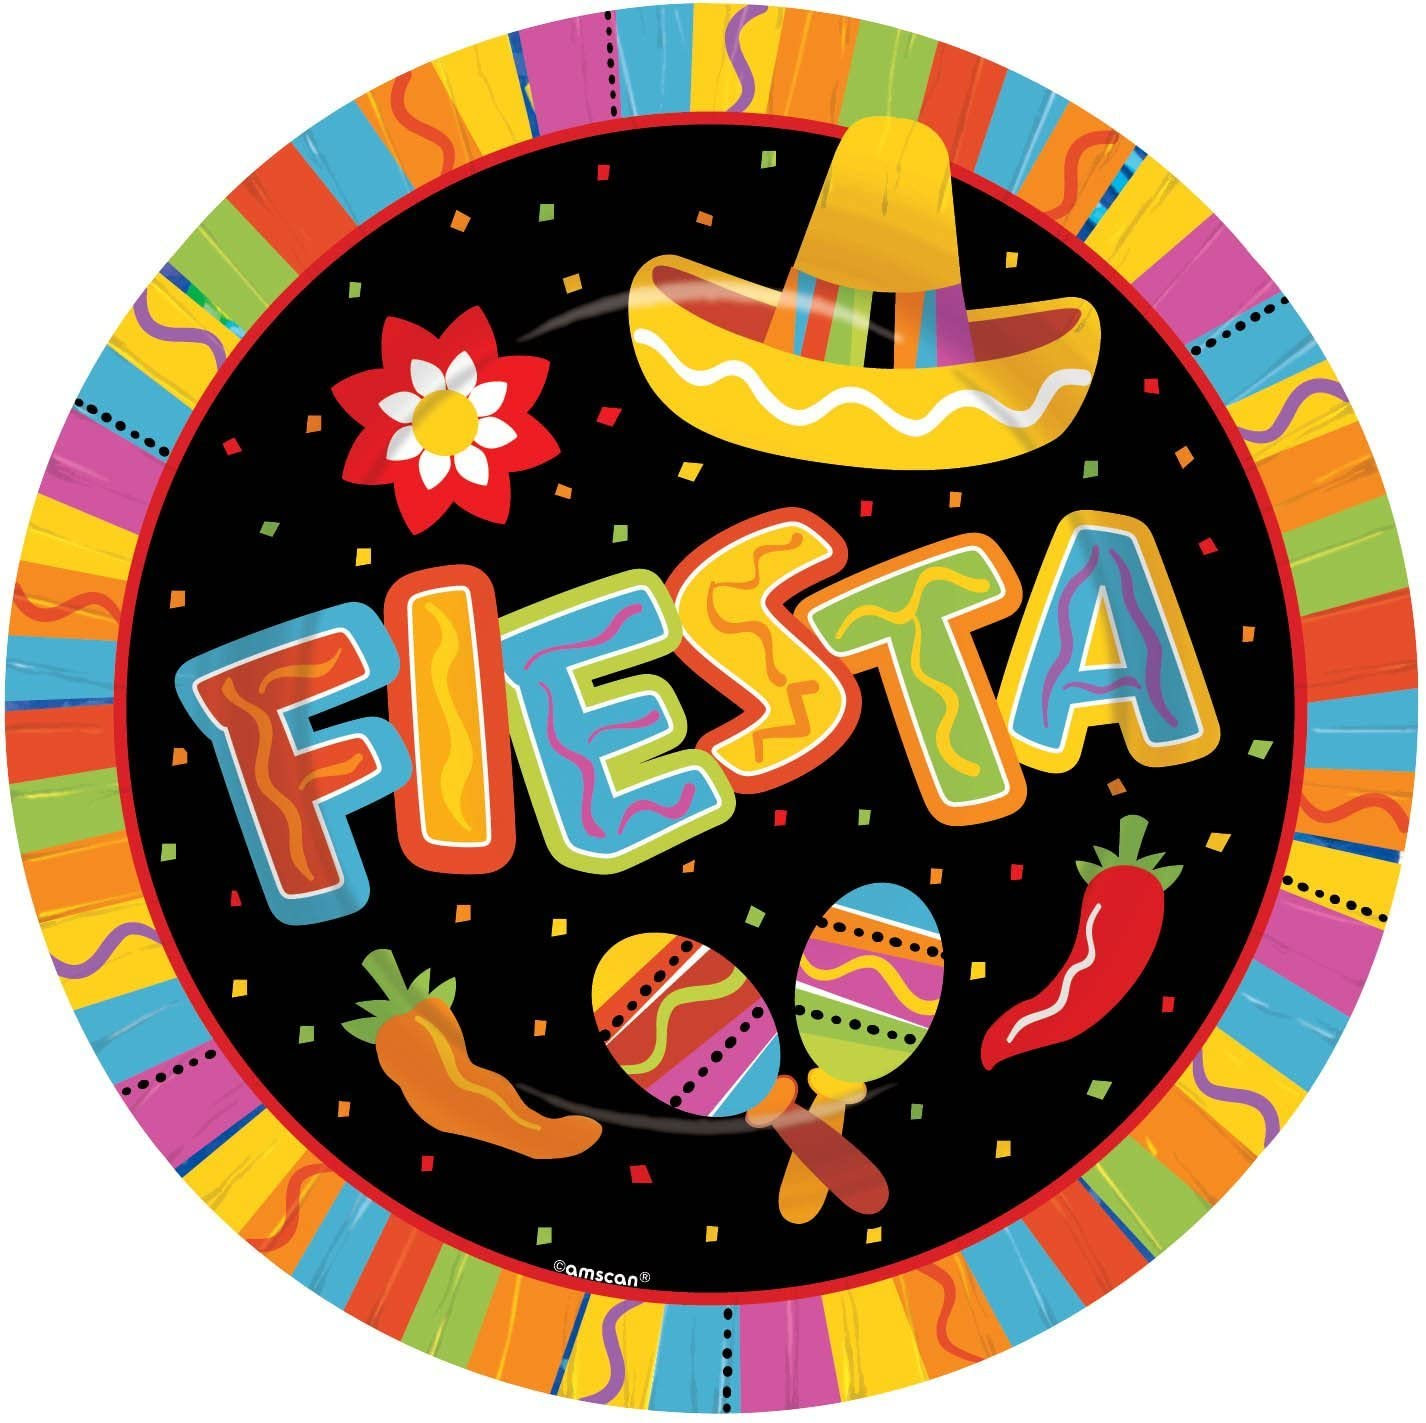 Fiesta Fun 10.5in Dinner Plates Party Accessory (8 ct) by Amscan